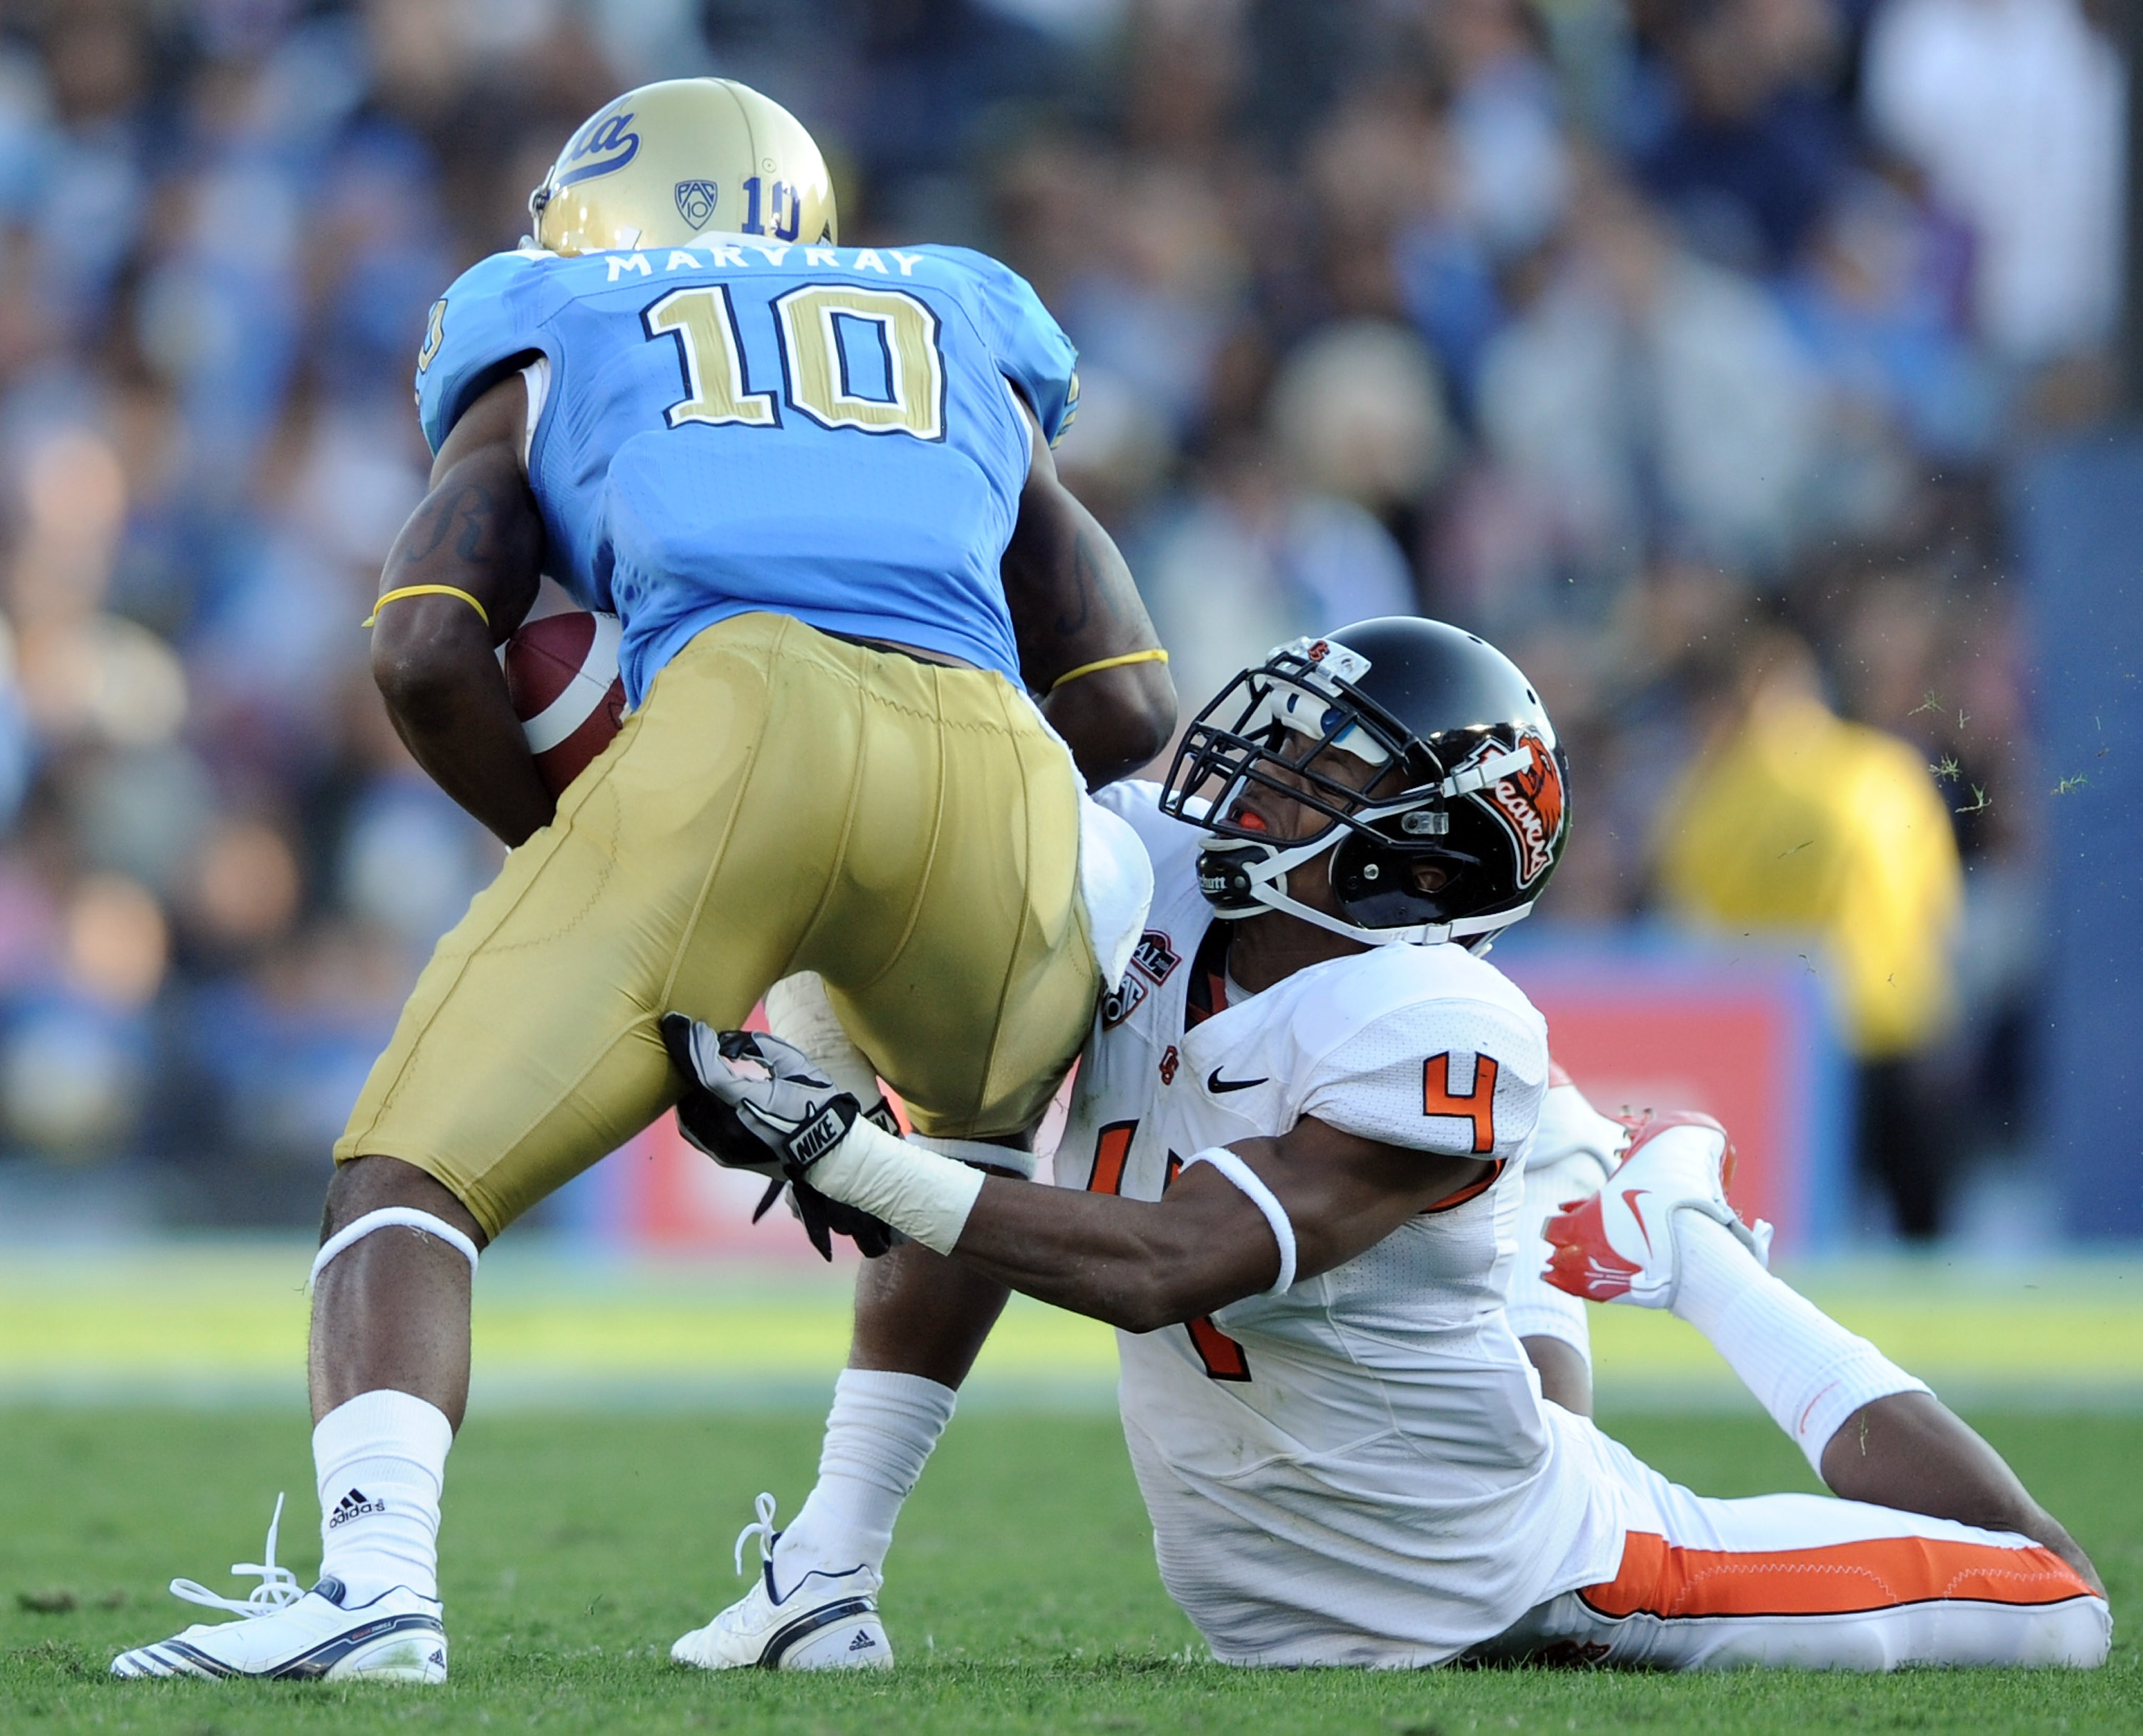 PASADENA, CA - NOVEMBER 06:  James Dockery #4 of the Oregon State Beavers attempts to tackle Akeem Ayers #10 of the UCLA Bruins after a catch at the Rose Bowl on November 6, 2010 in Pasadena, California.  (Photo by Harry How/Getty Images)